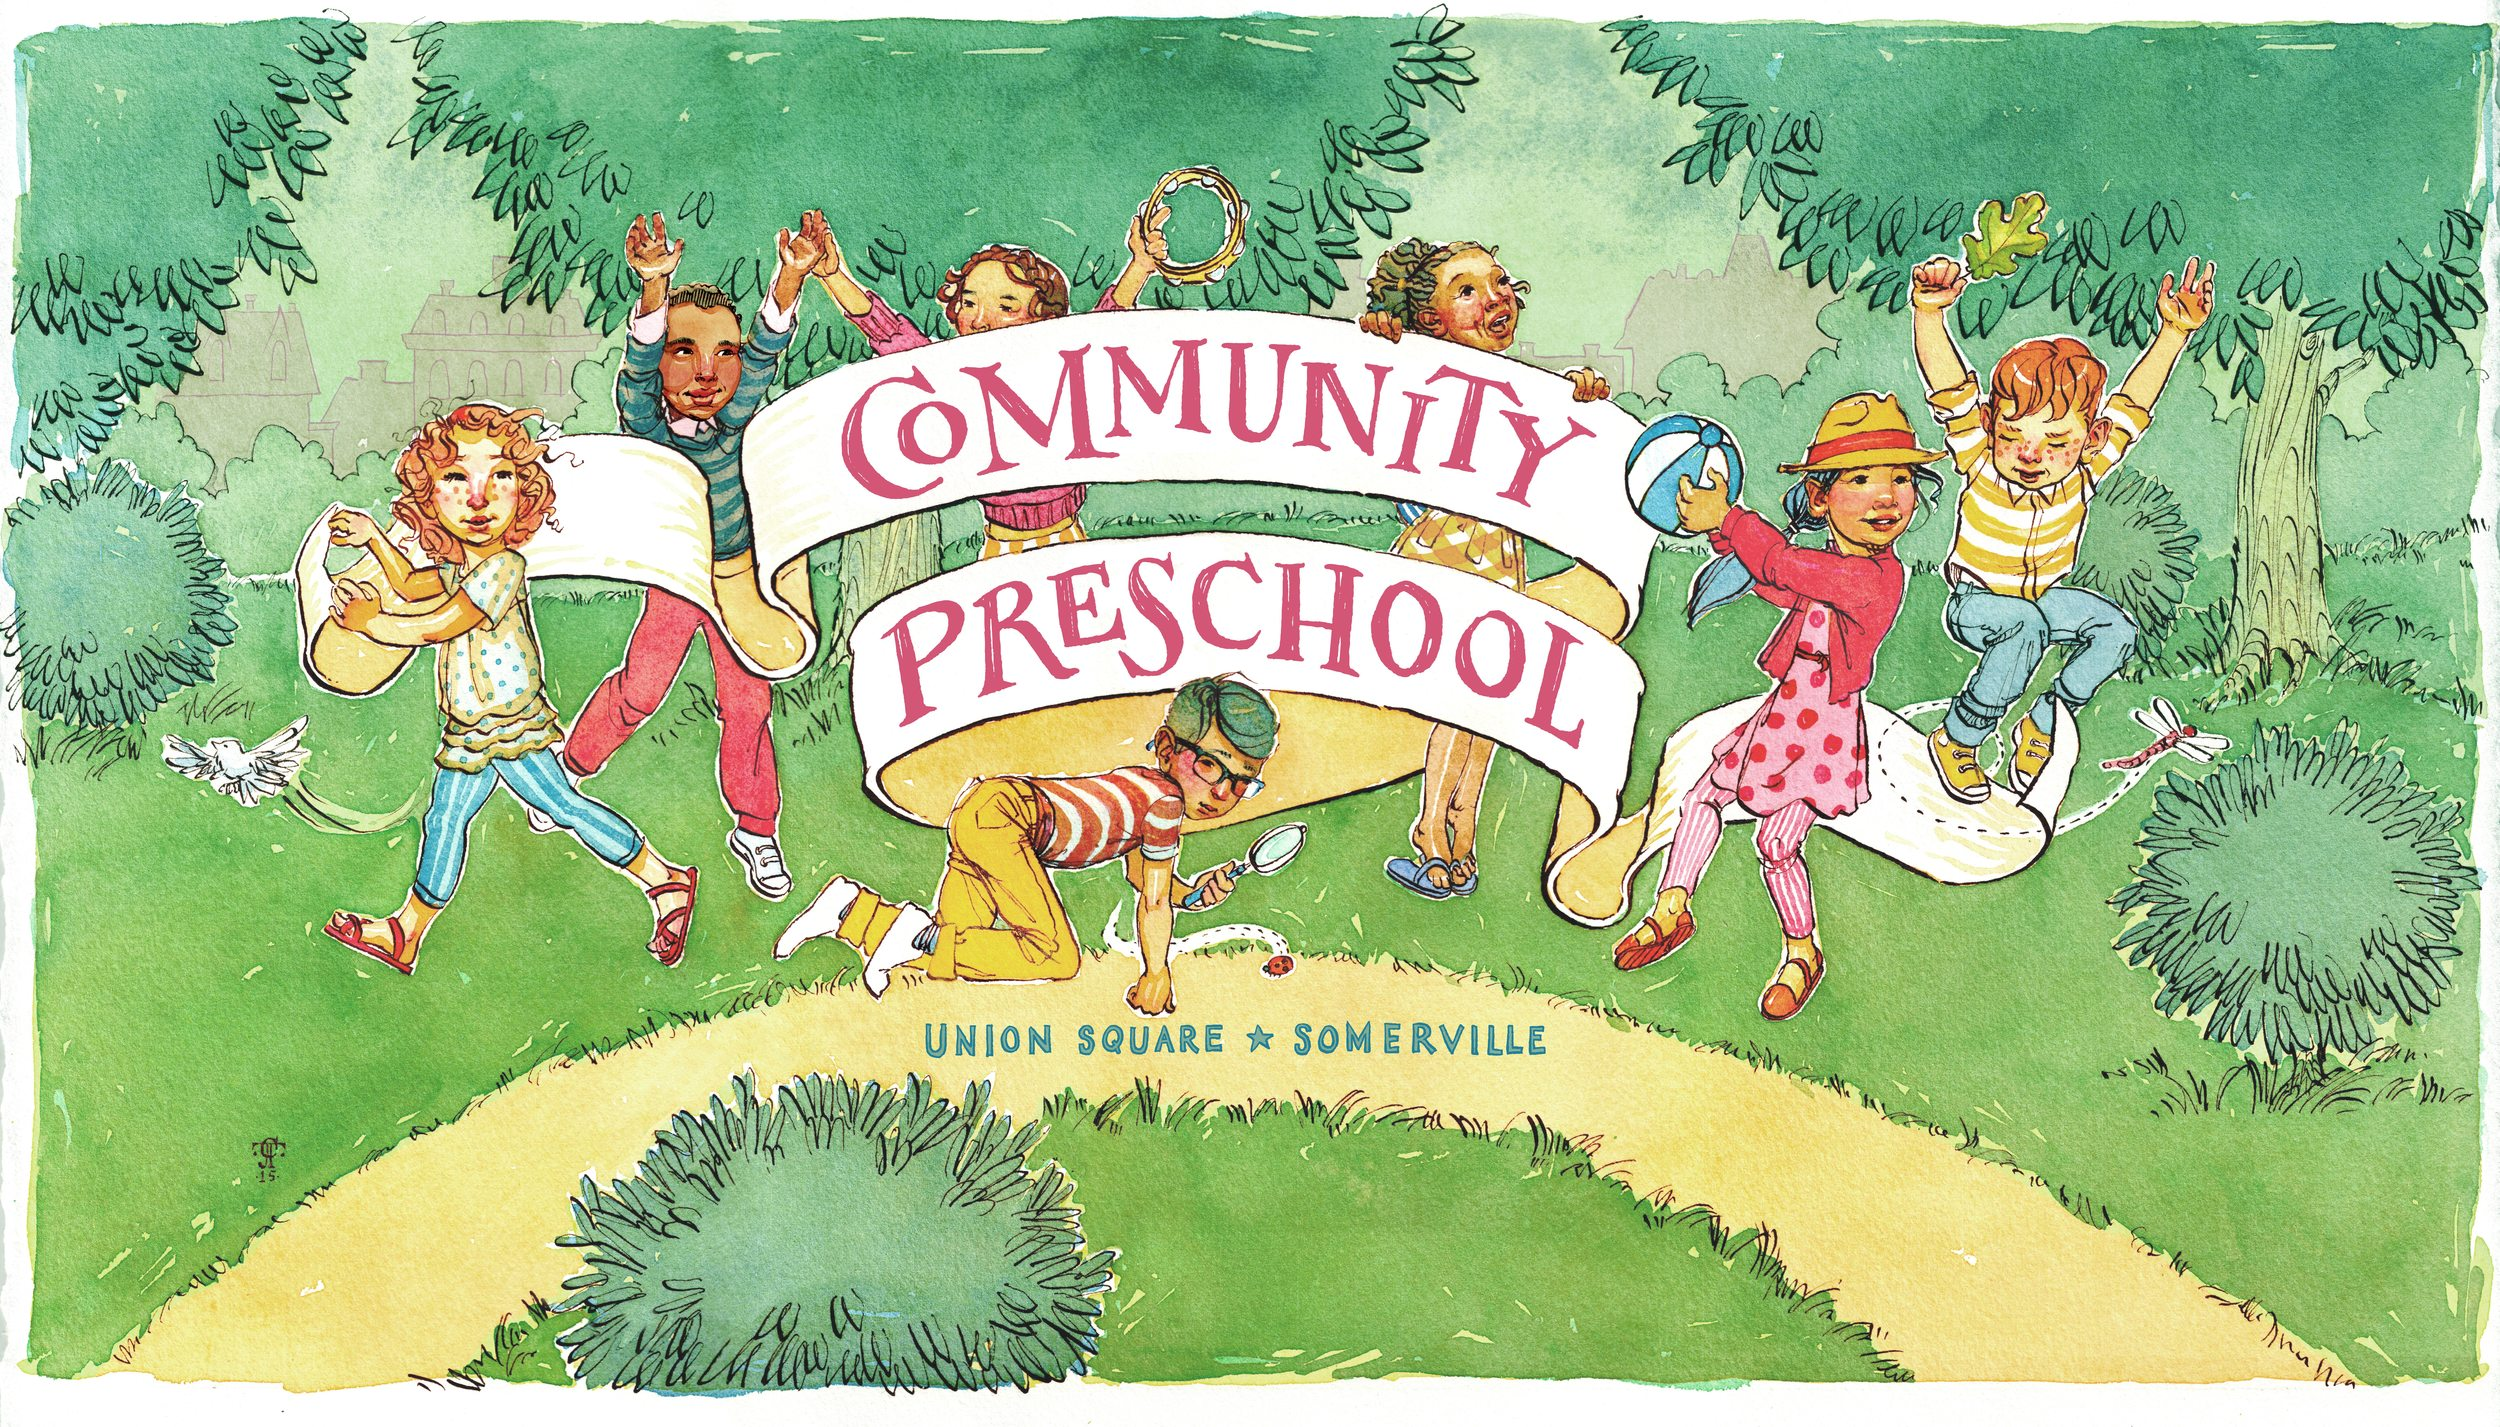 community_preschool_final copy.jpg